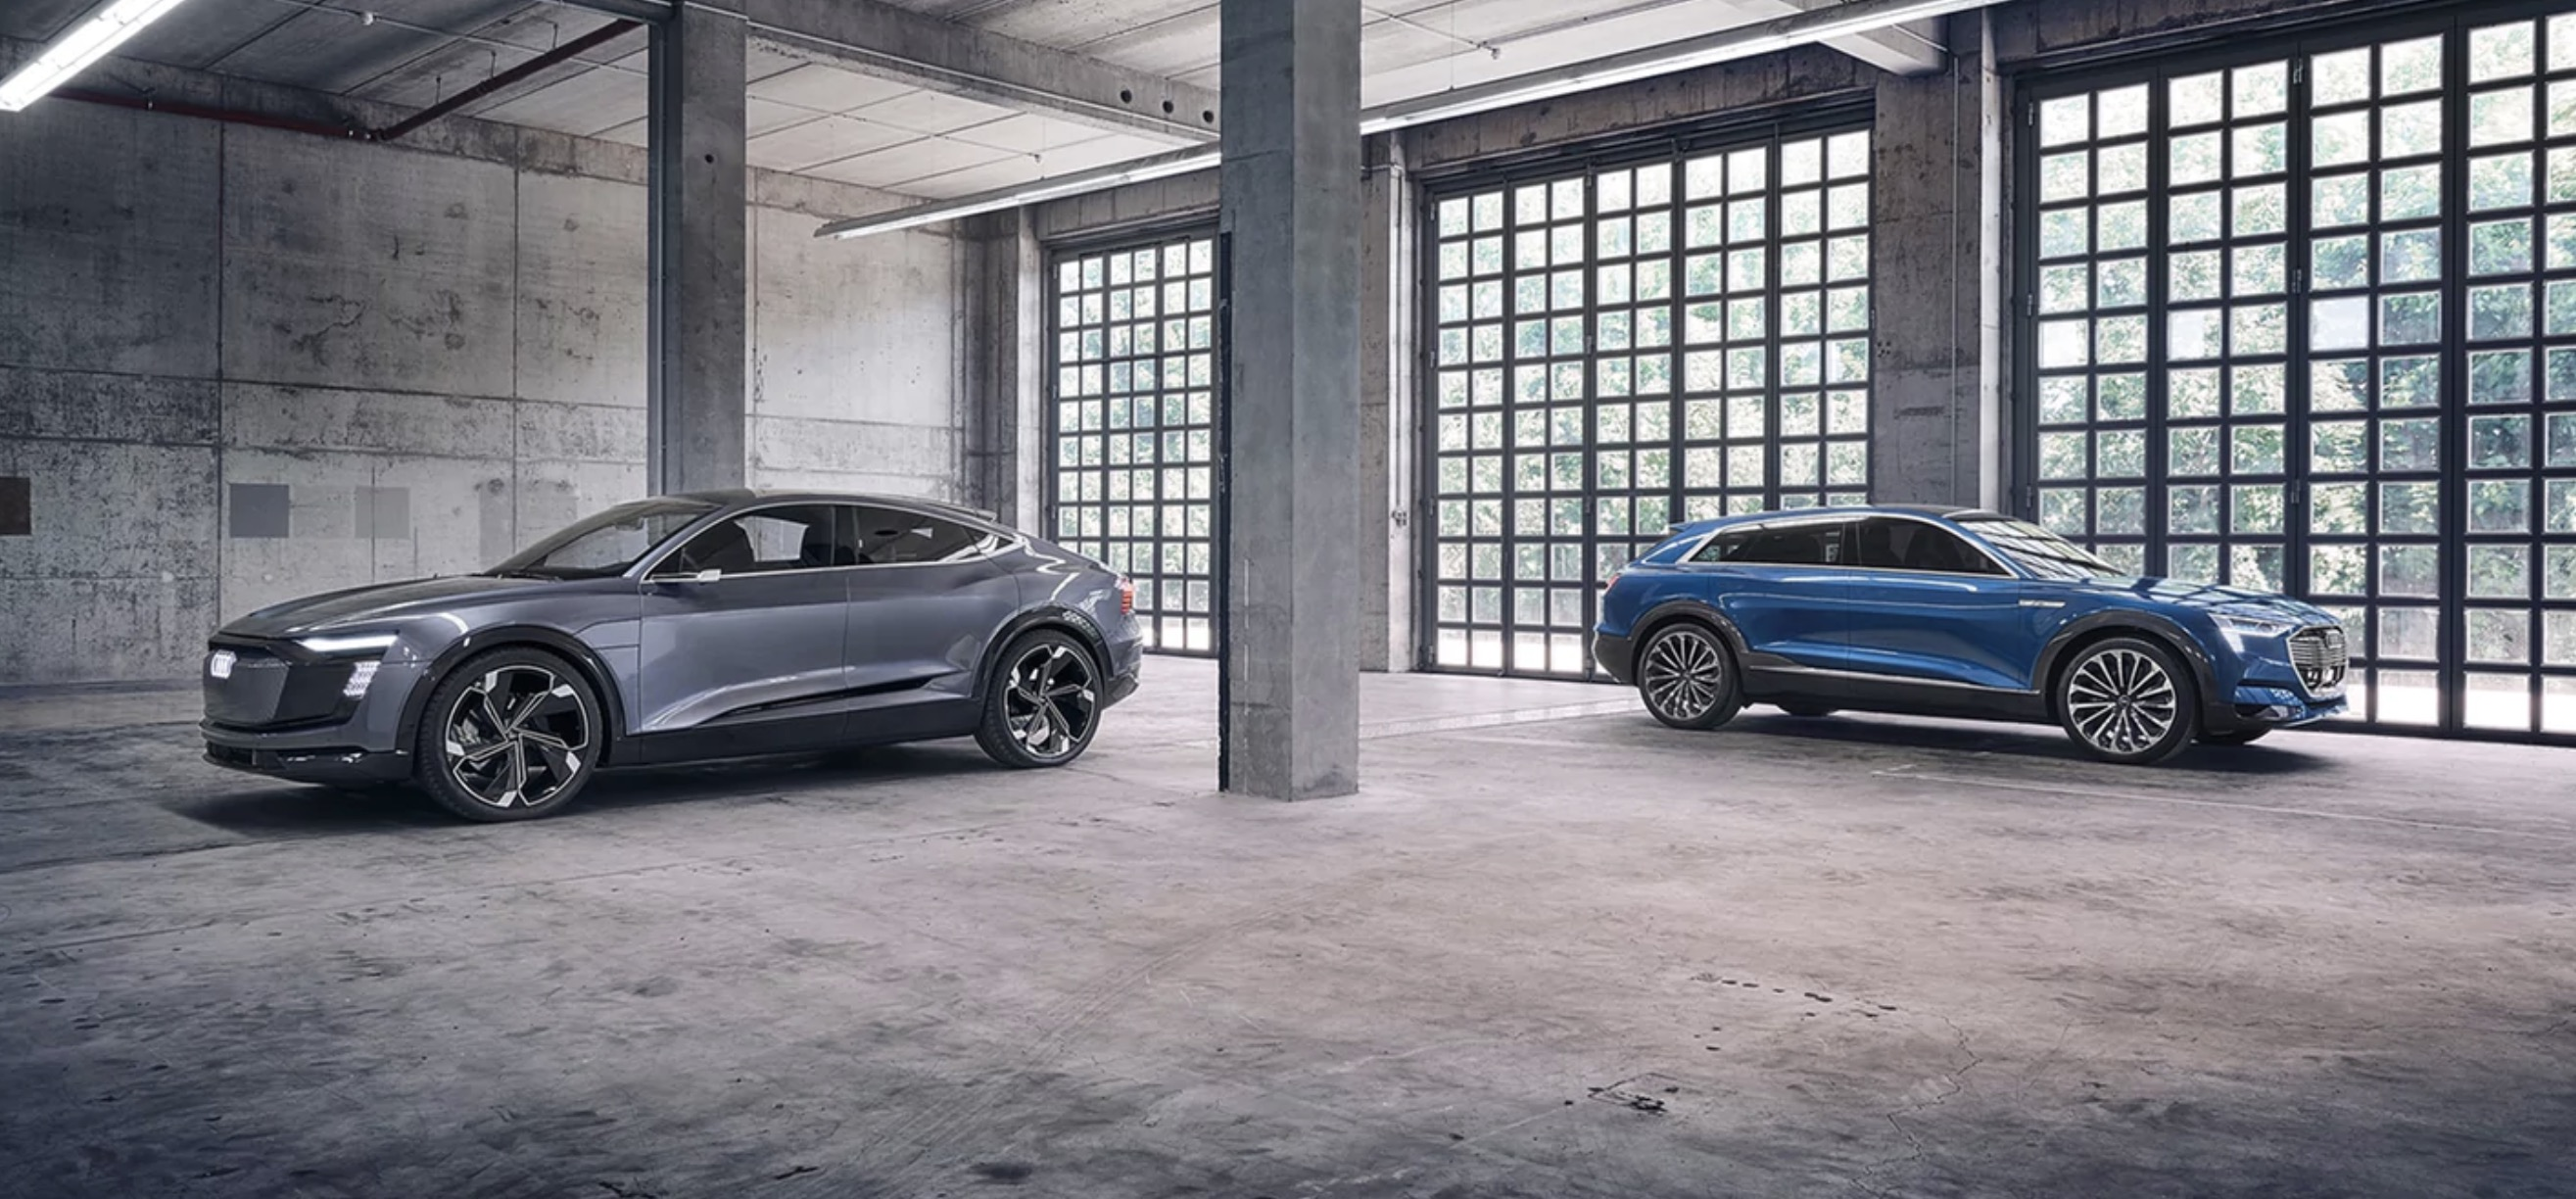 Audi opens reservations with deposits for its two new e-tron vehicles (quattro and sportback) in more markets